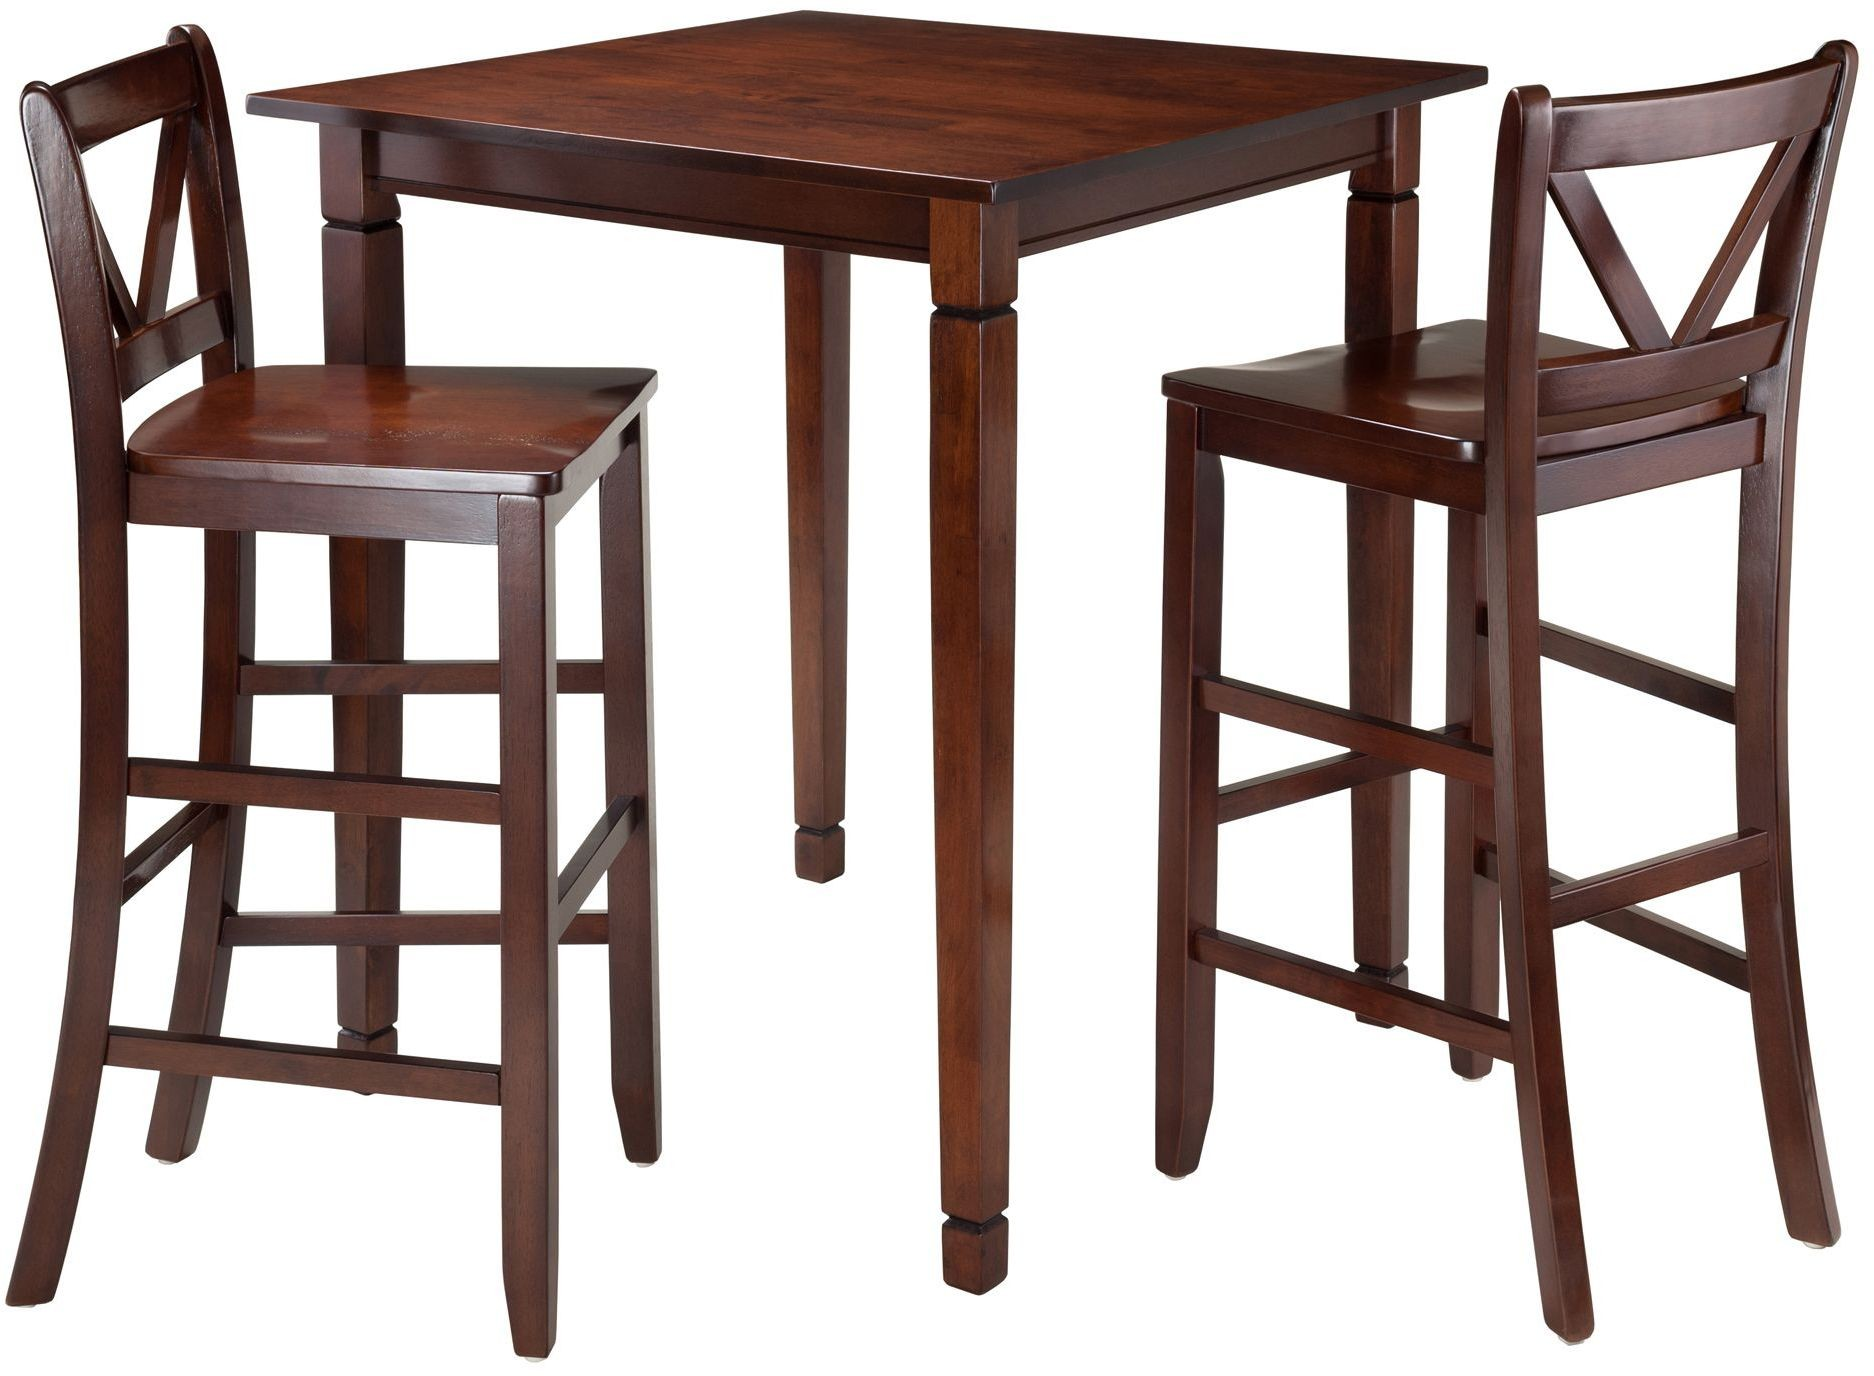 Kingsgate 3 piece dining room set from winsomewood for 3 piece dining room set